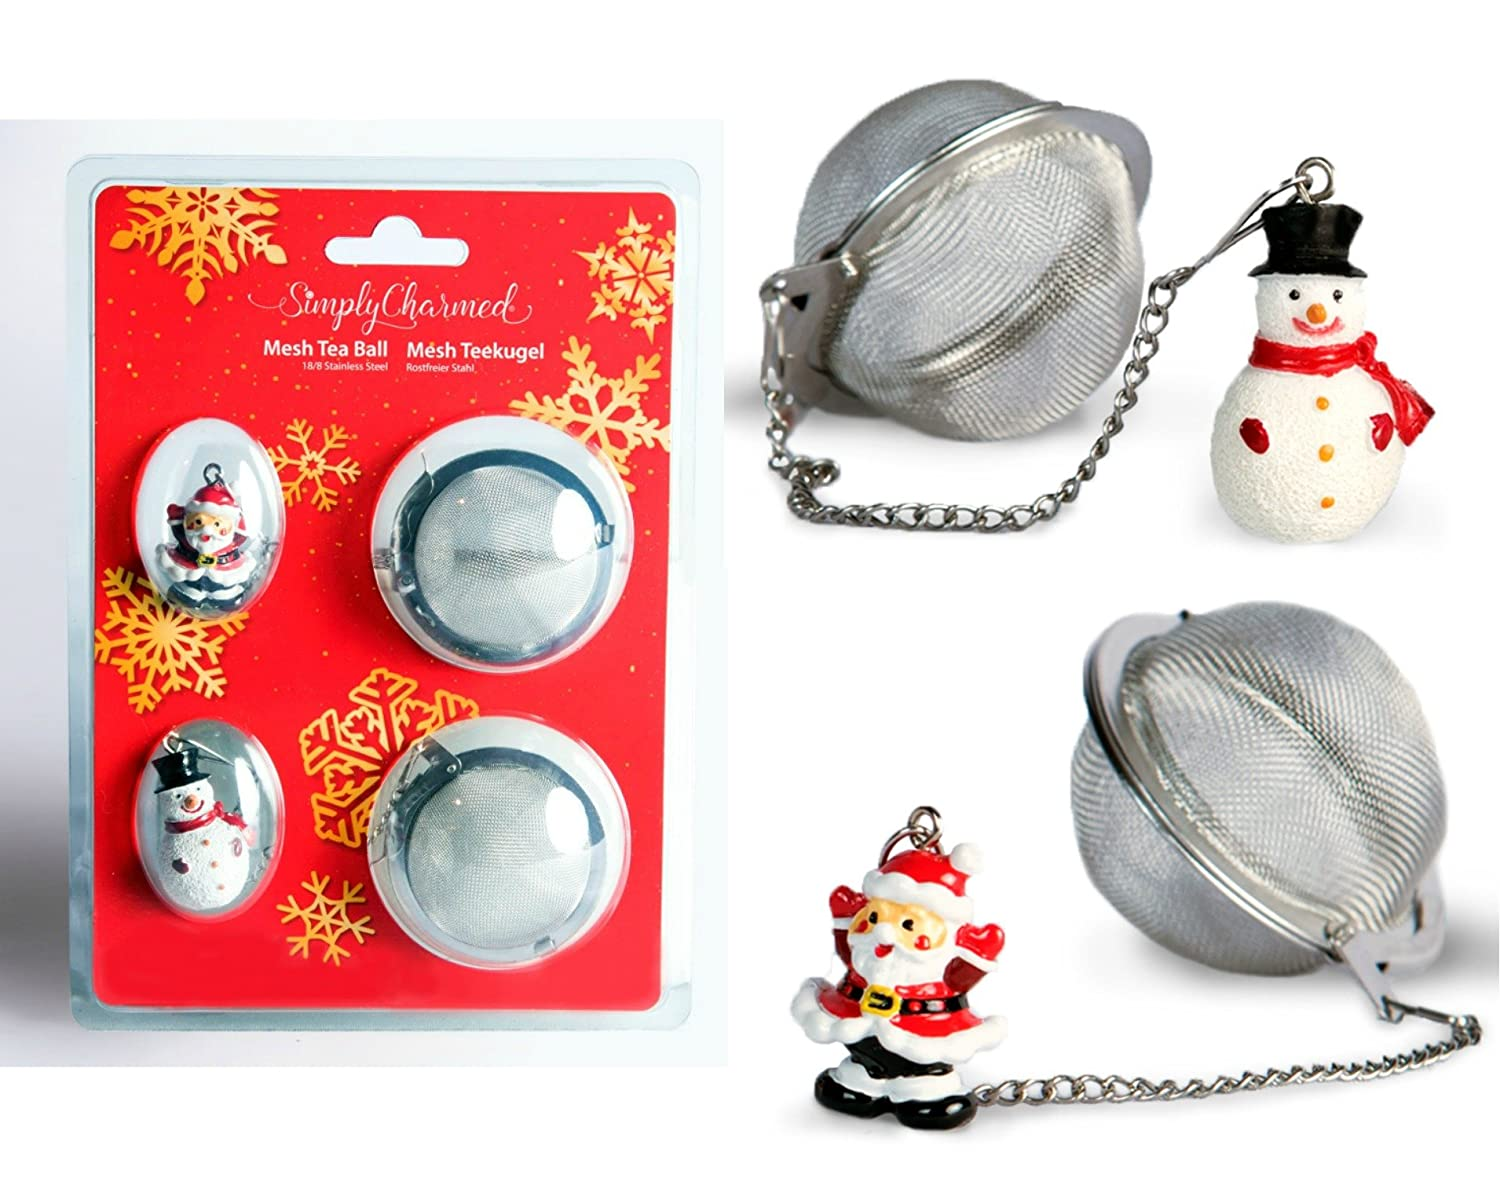 Tea Ball Infusers Two Pack Santa and Snowman Stainless Steel Strainers - Great Holiday Gift for Tea Lovers by Simply Charmed